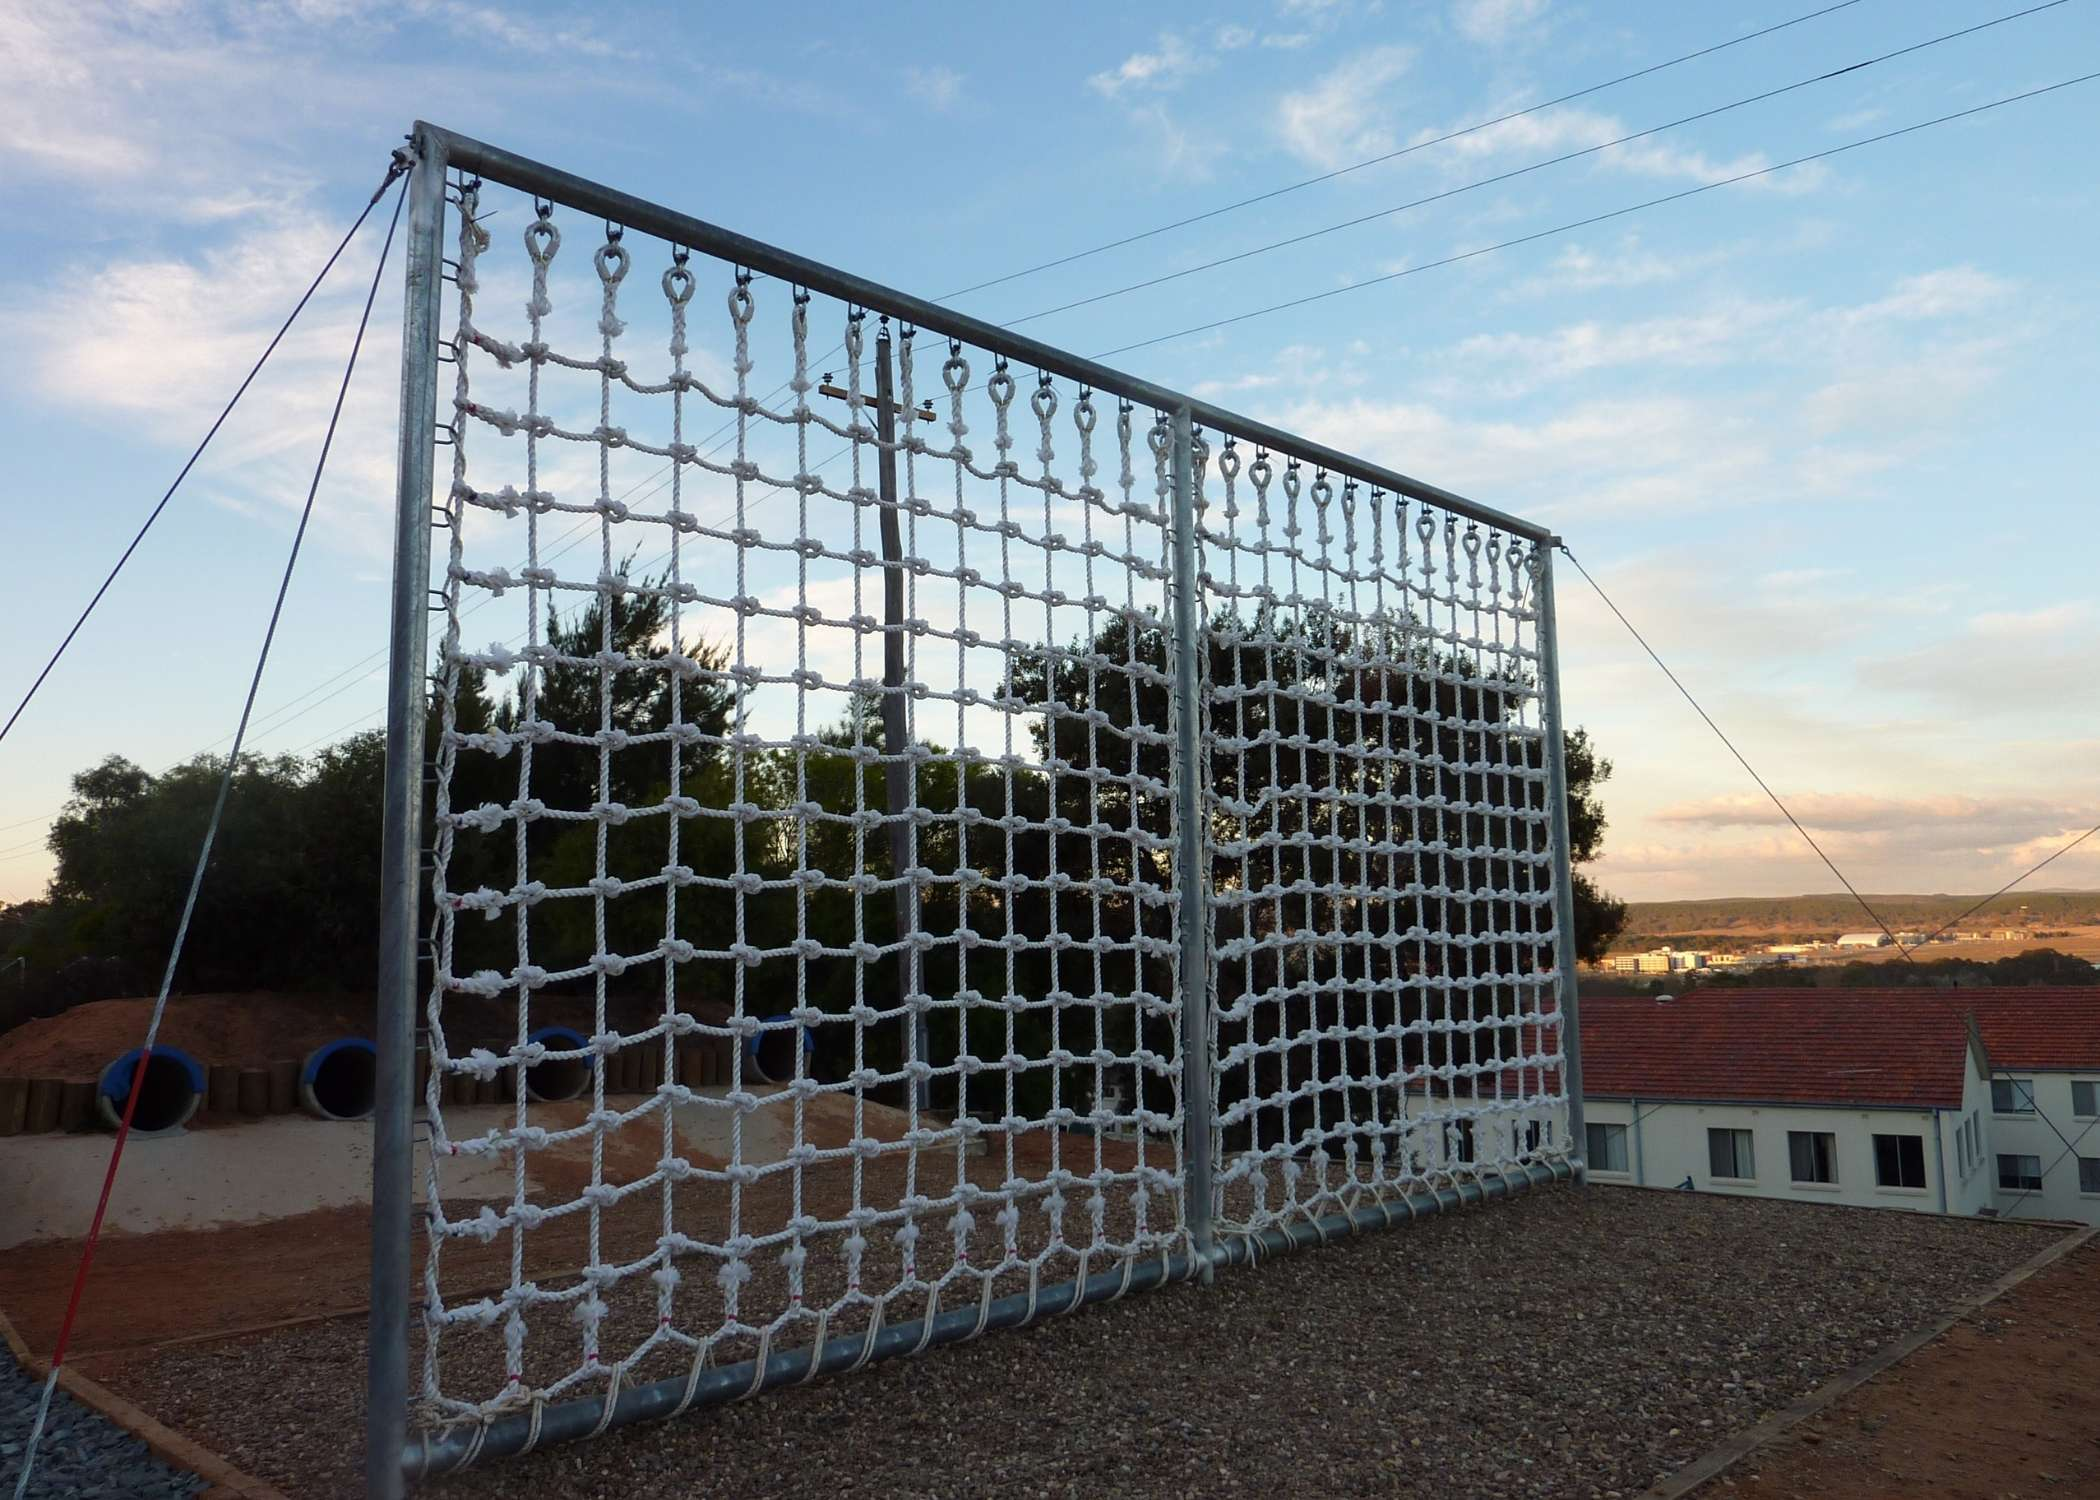 outdoor obstacle course supplier, training equipment